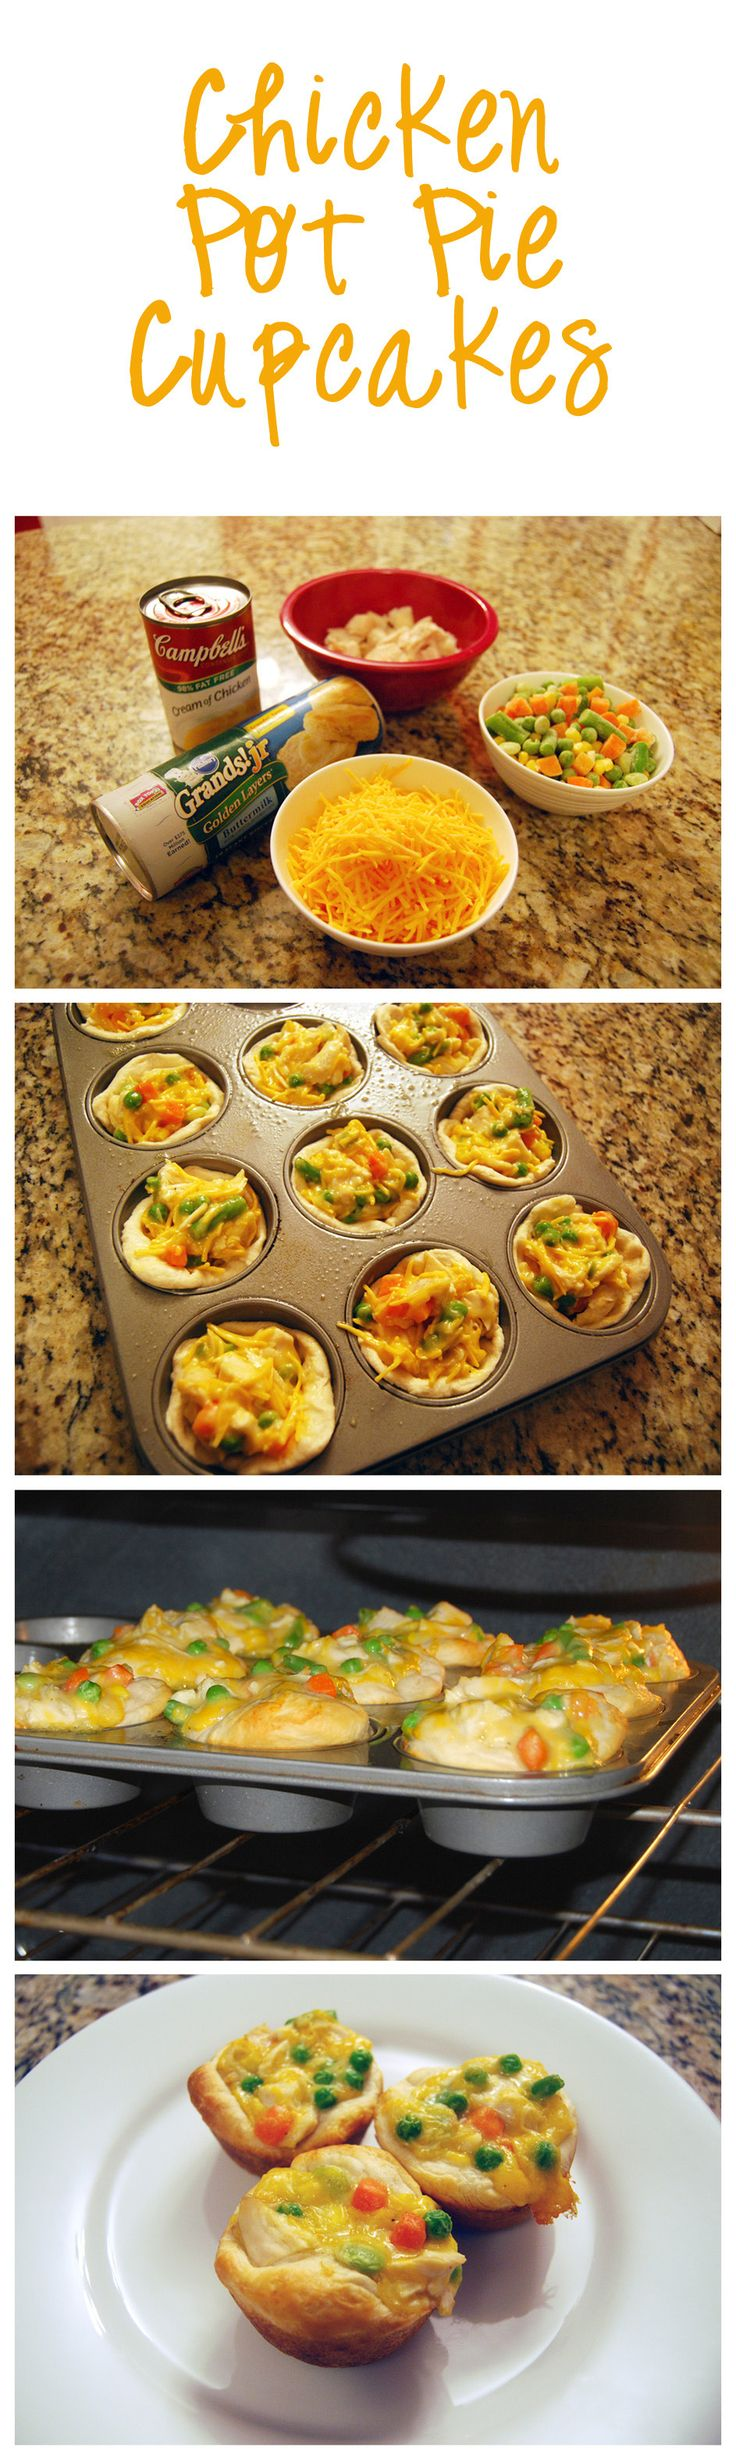 Chicken Pot Pie Cupcakes  2 cans (12.5 oz) chicken,  1 can (10.5 oz) cream of chicken,  1/2 cup sour cream,  1 1/2 cup frozen veggies, 1 cup shredded cheese,  Garlic powder, basil, parsley, pepper, & Italian seasoning 3 cans (7.5 oz) Aldi's buttermilk biscuits (rolled out 2 together for each muffin tin)  Yields 15 muffins